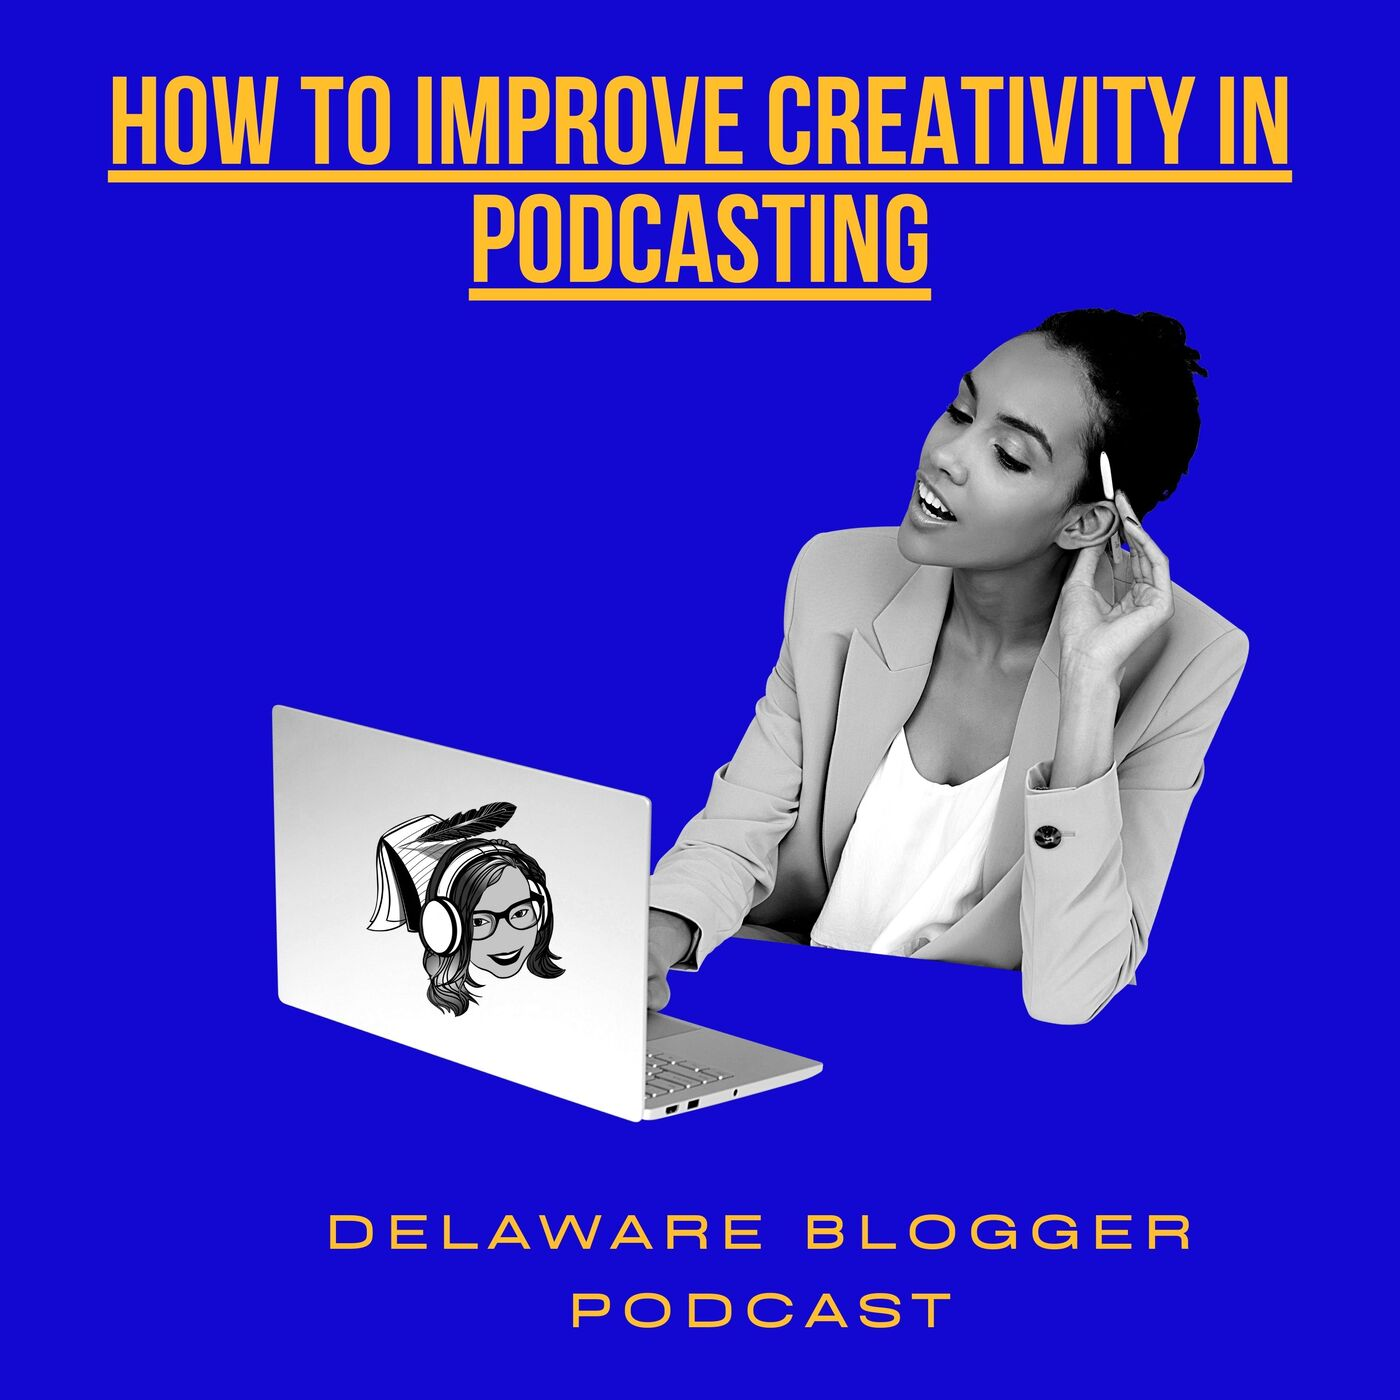 How to Improve Creativity in Podcasting